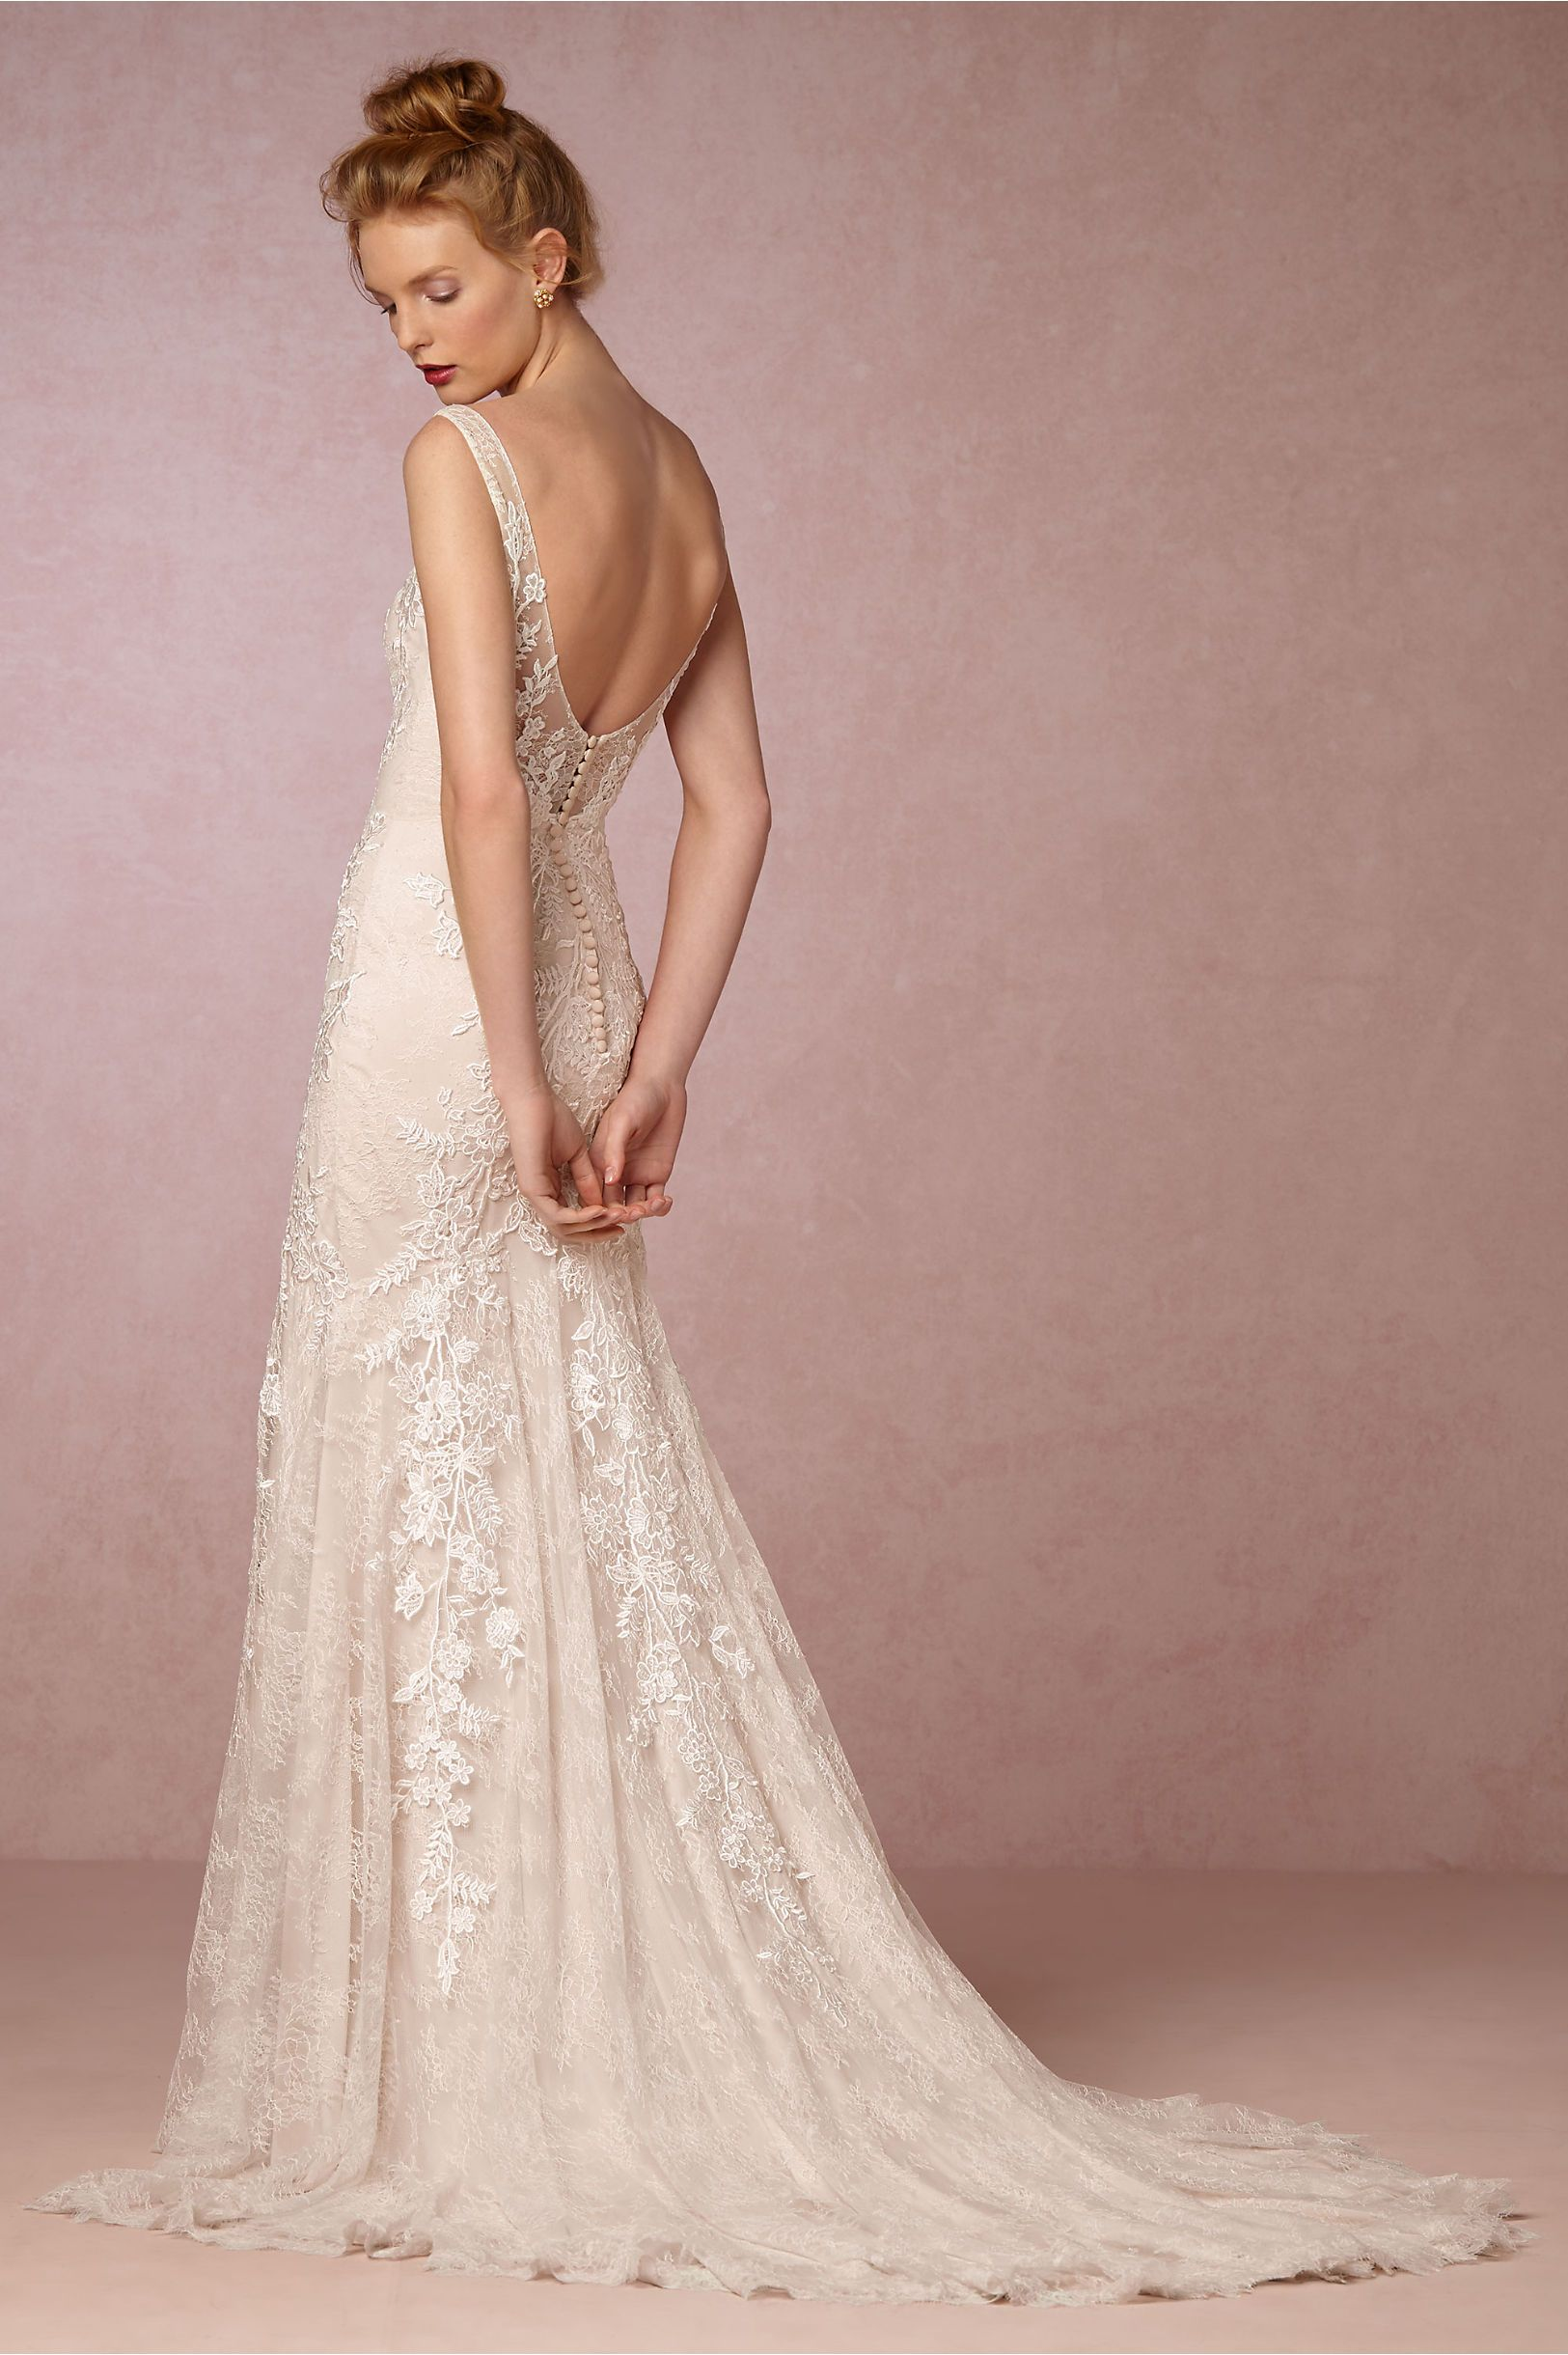 Bhldn elisha gown in bride bhldn rm pinterest gowns bhldn elisha gown in bride bhldn used wedding dresseswedding ombrellifo Image collections